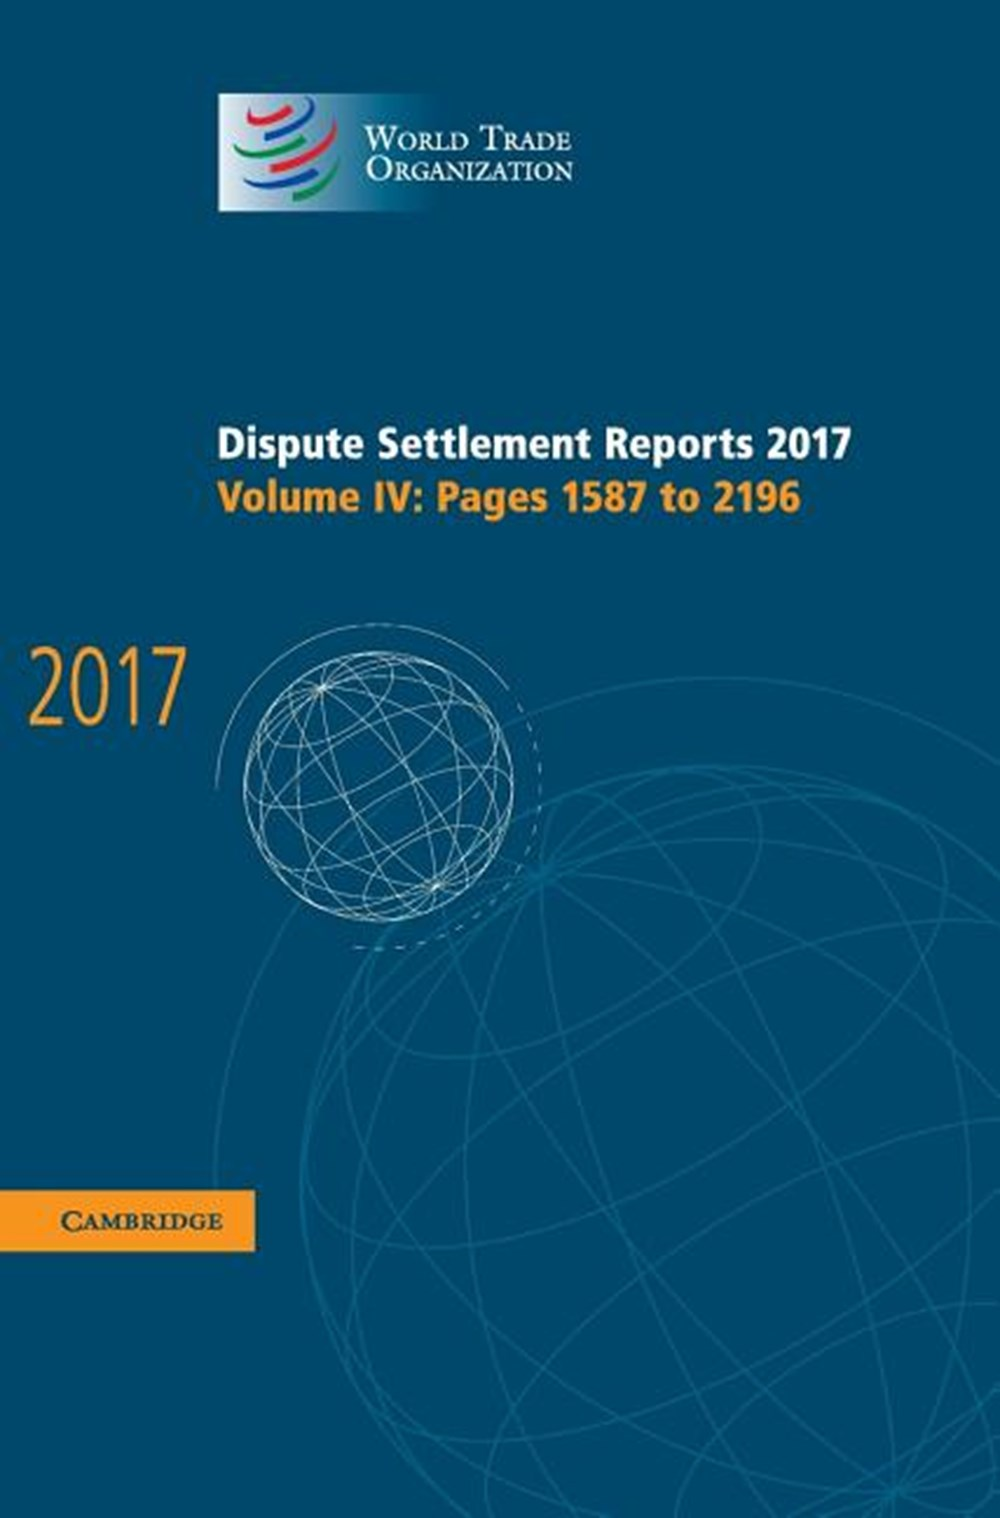 Dispute Settlement Reports 2017 Volume 4, Pages 1587 to 2196